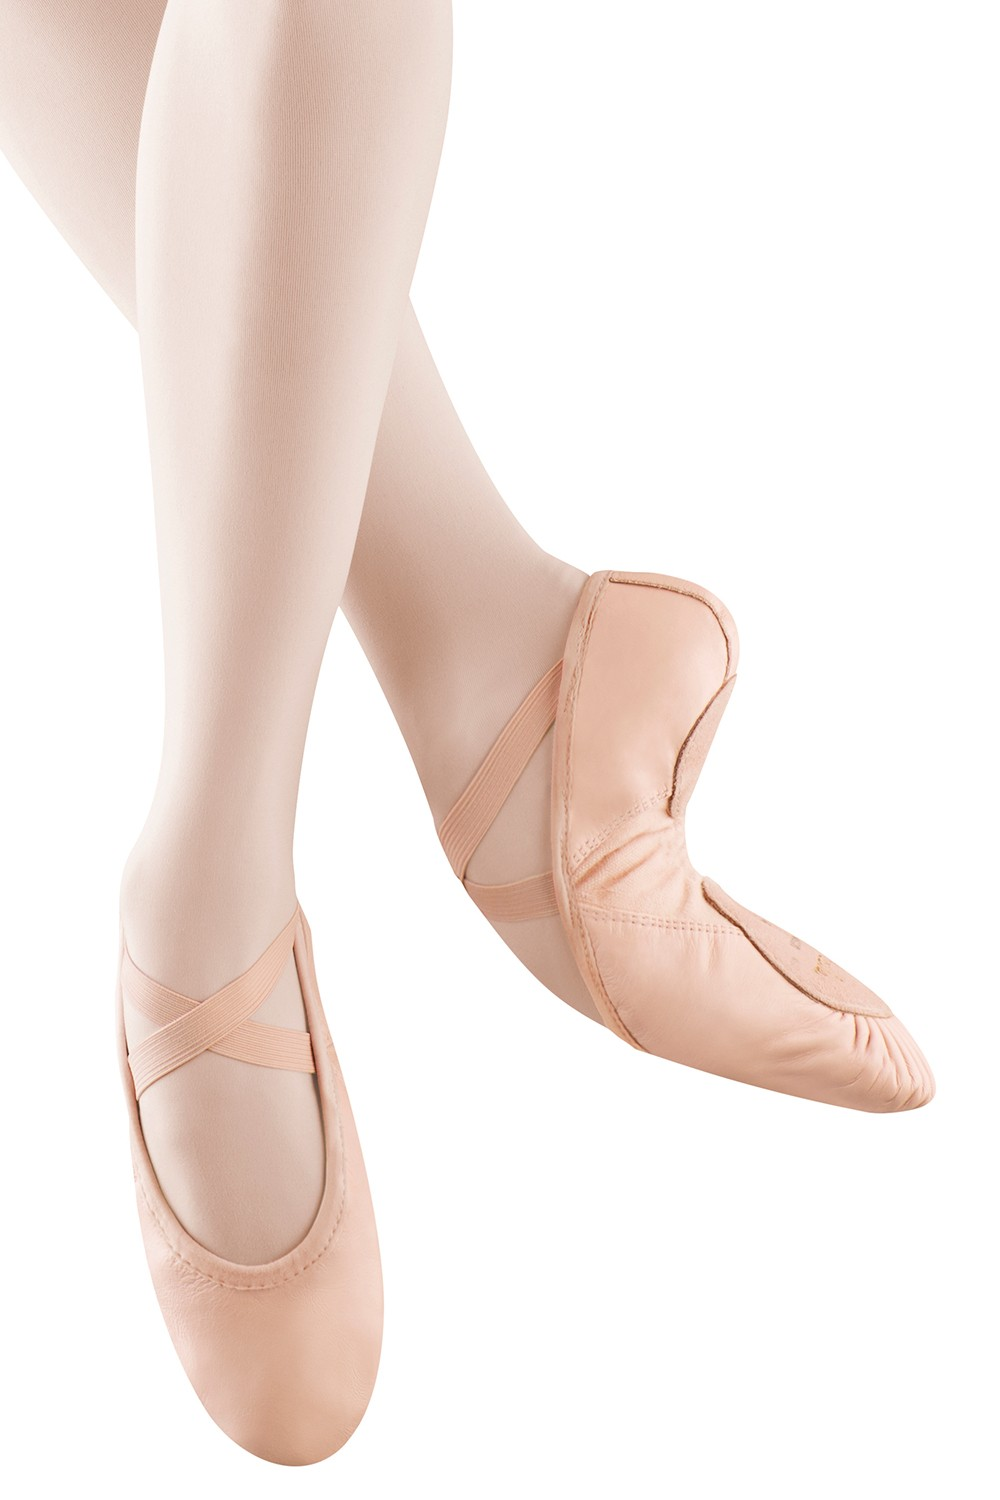 Medley Women's Ballet Shoes